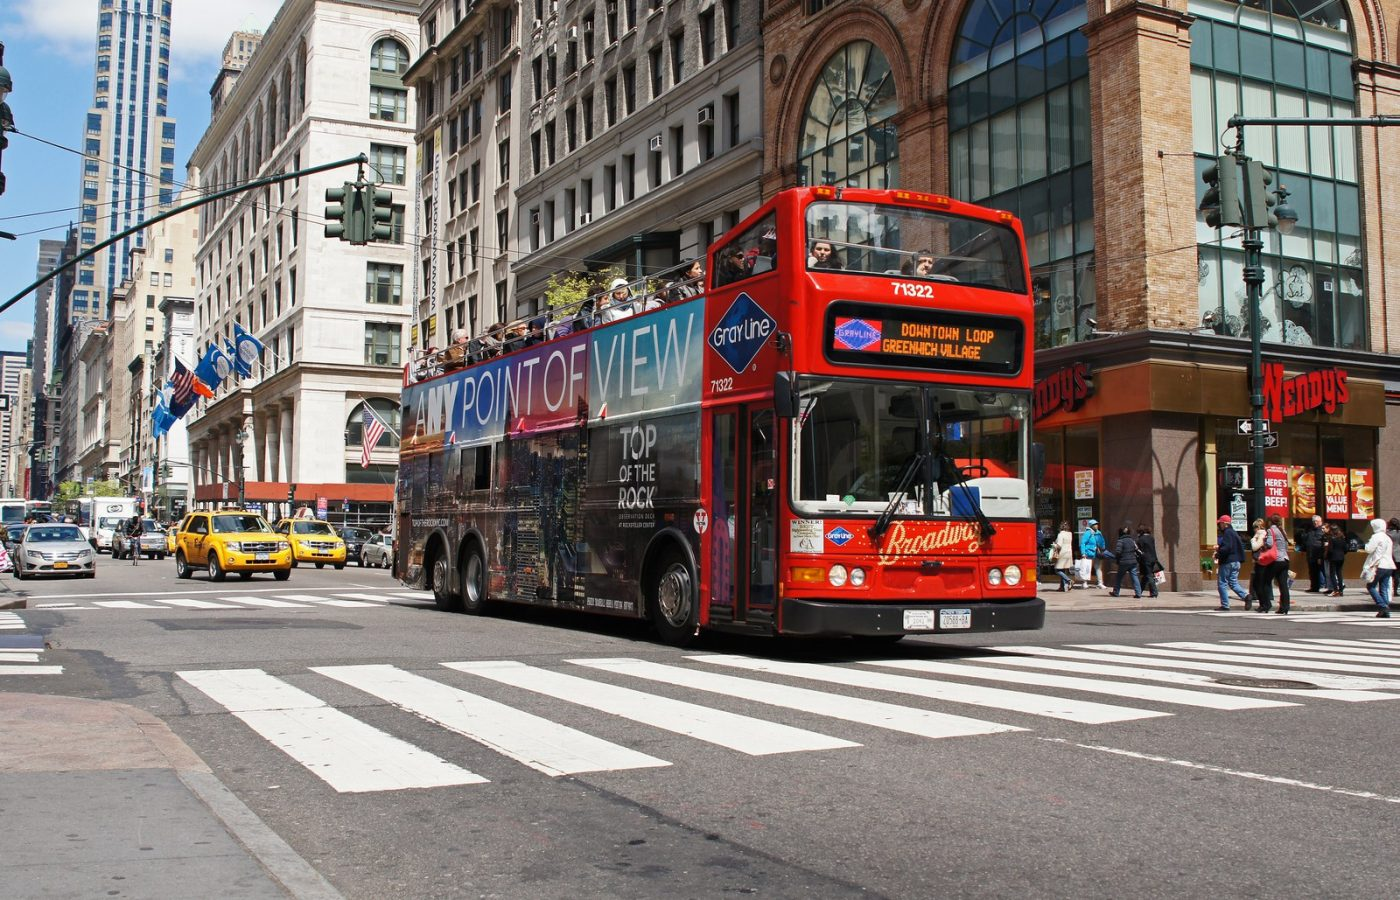 New York Hop on Hop off Bus Tour options for Sightseeing Pass holders The Free River Cruise· 4 Bus Loops· Hop on Hop off Map· 50 Bus Stops.